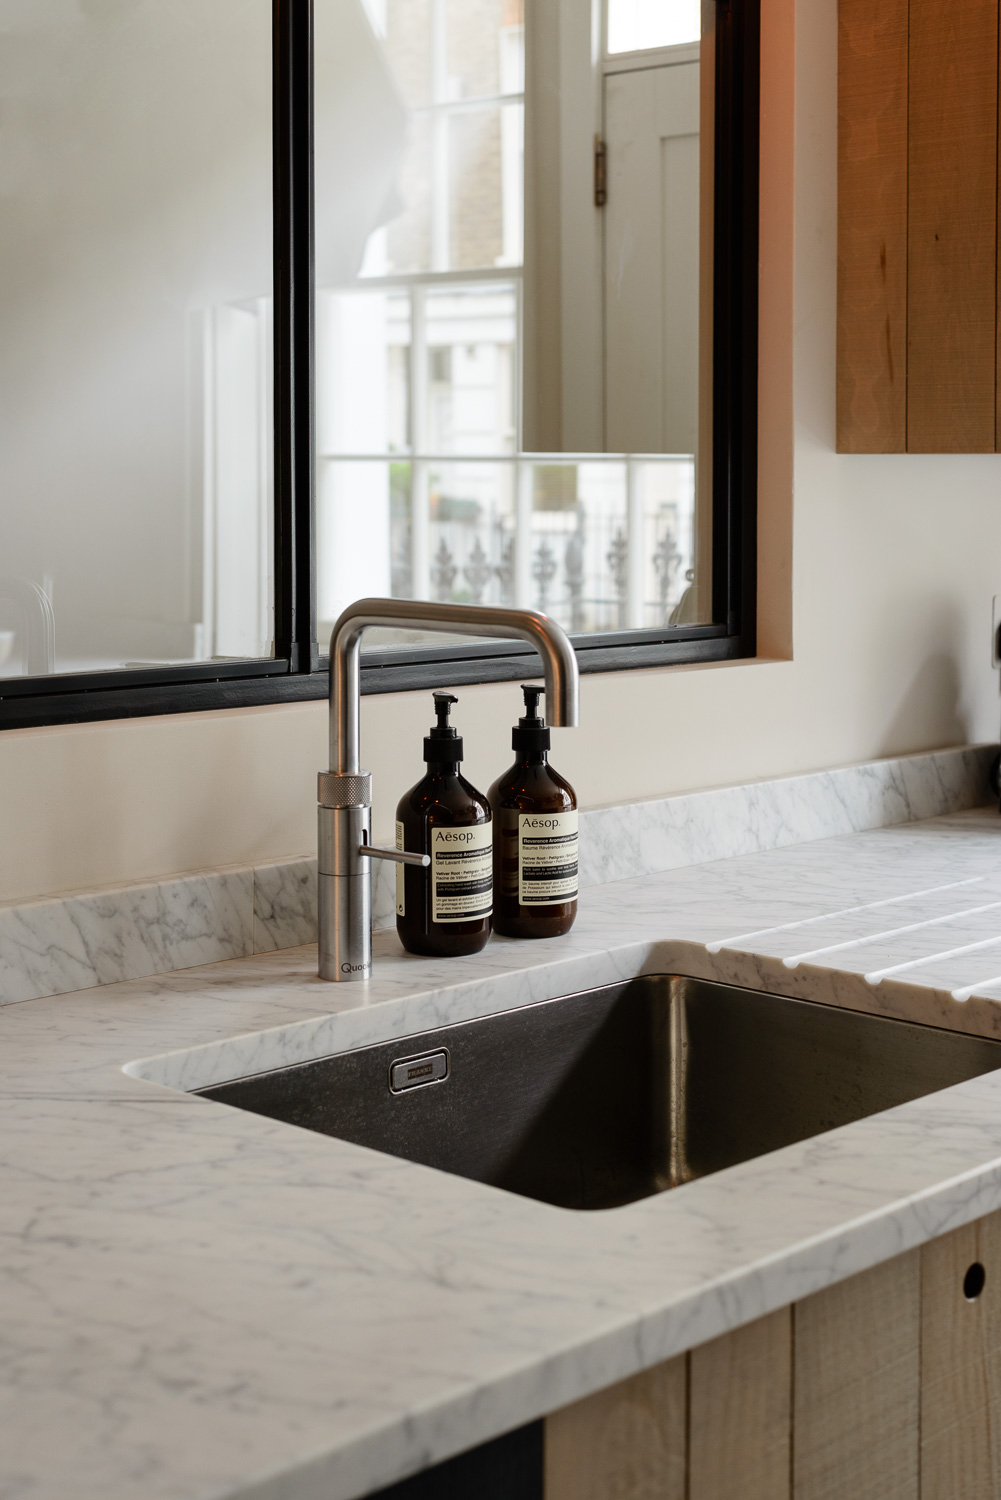 Much less shiny and reflective, this Carrara marble has a honed finish.